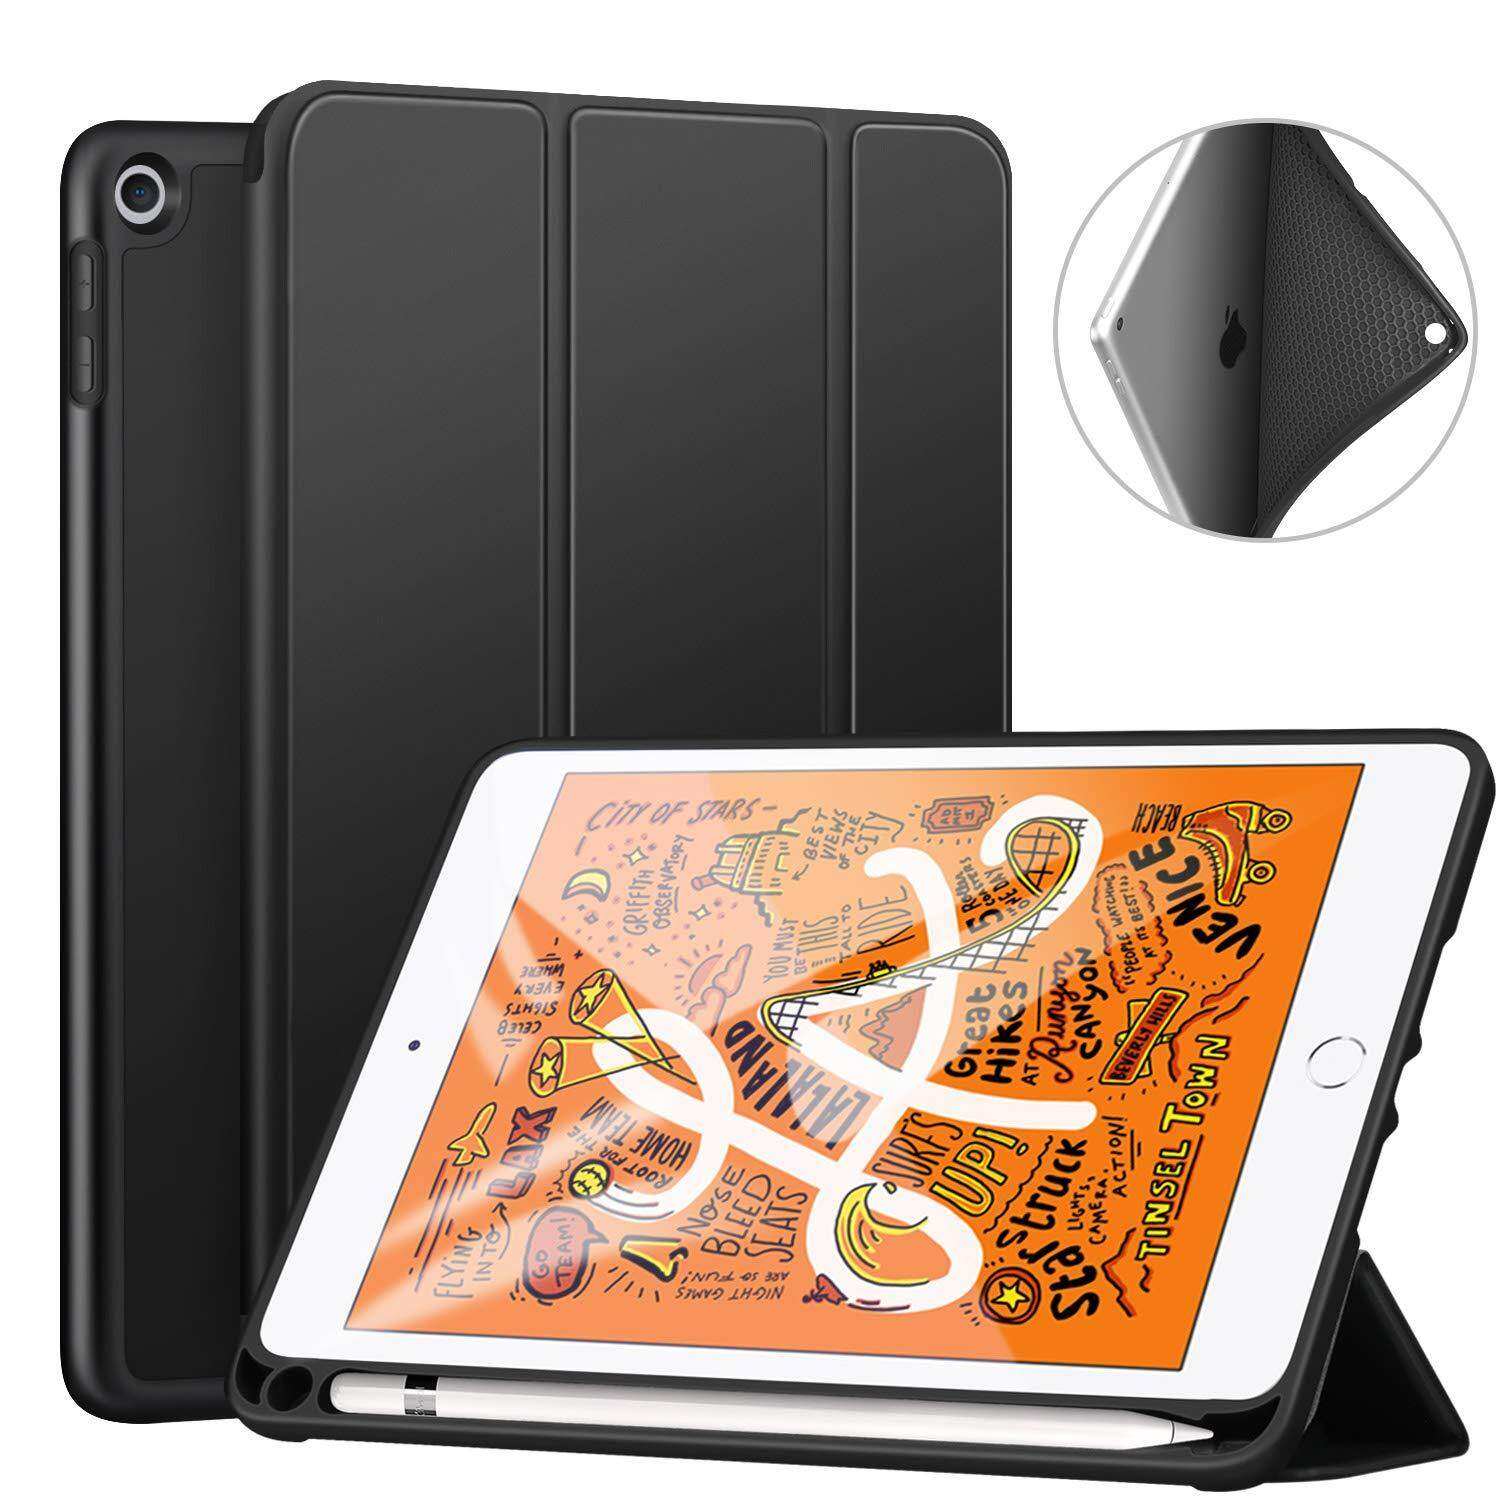 Case For Ipad Mini 5th Gen 2019 With Pencil Holder, Lightweight Soft Tpu Back And Trifold Stand Smart Cover With Auto Sleep/wake,protective For Ipad Mini 5 7.9 2019 Release By Zhuyuli Co Ltd.